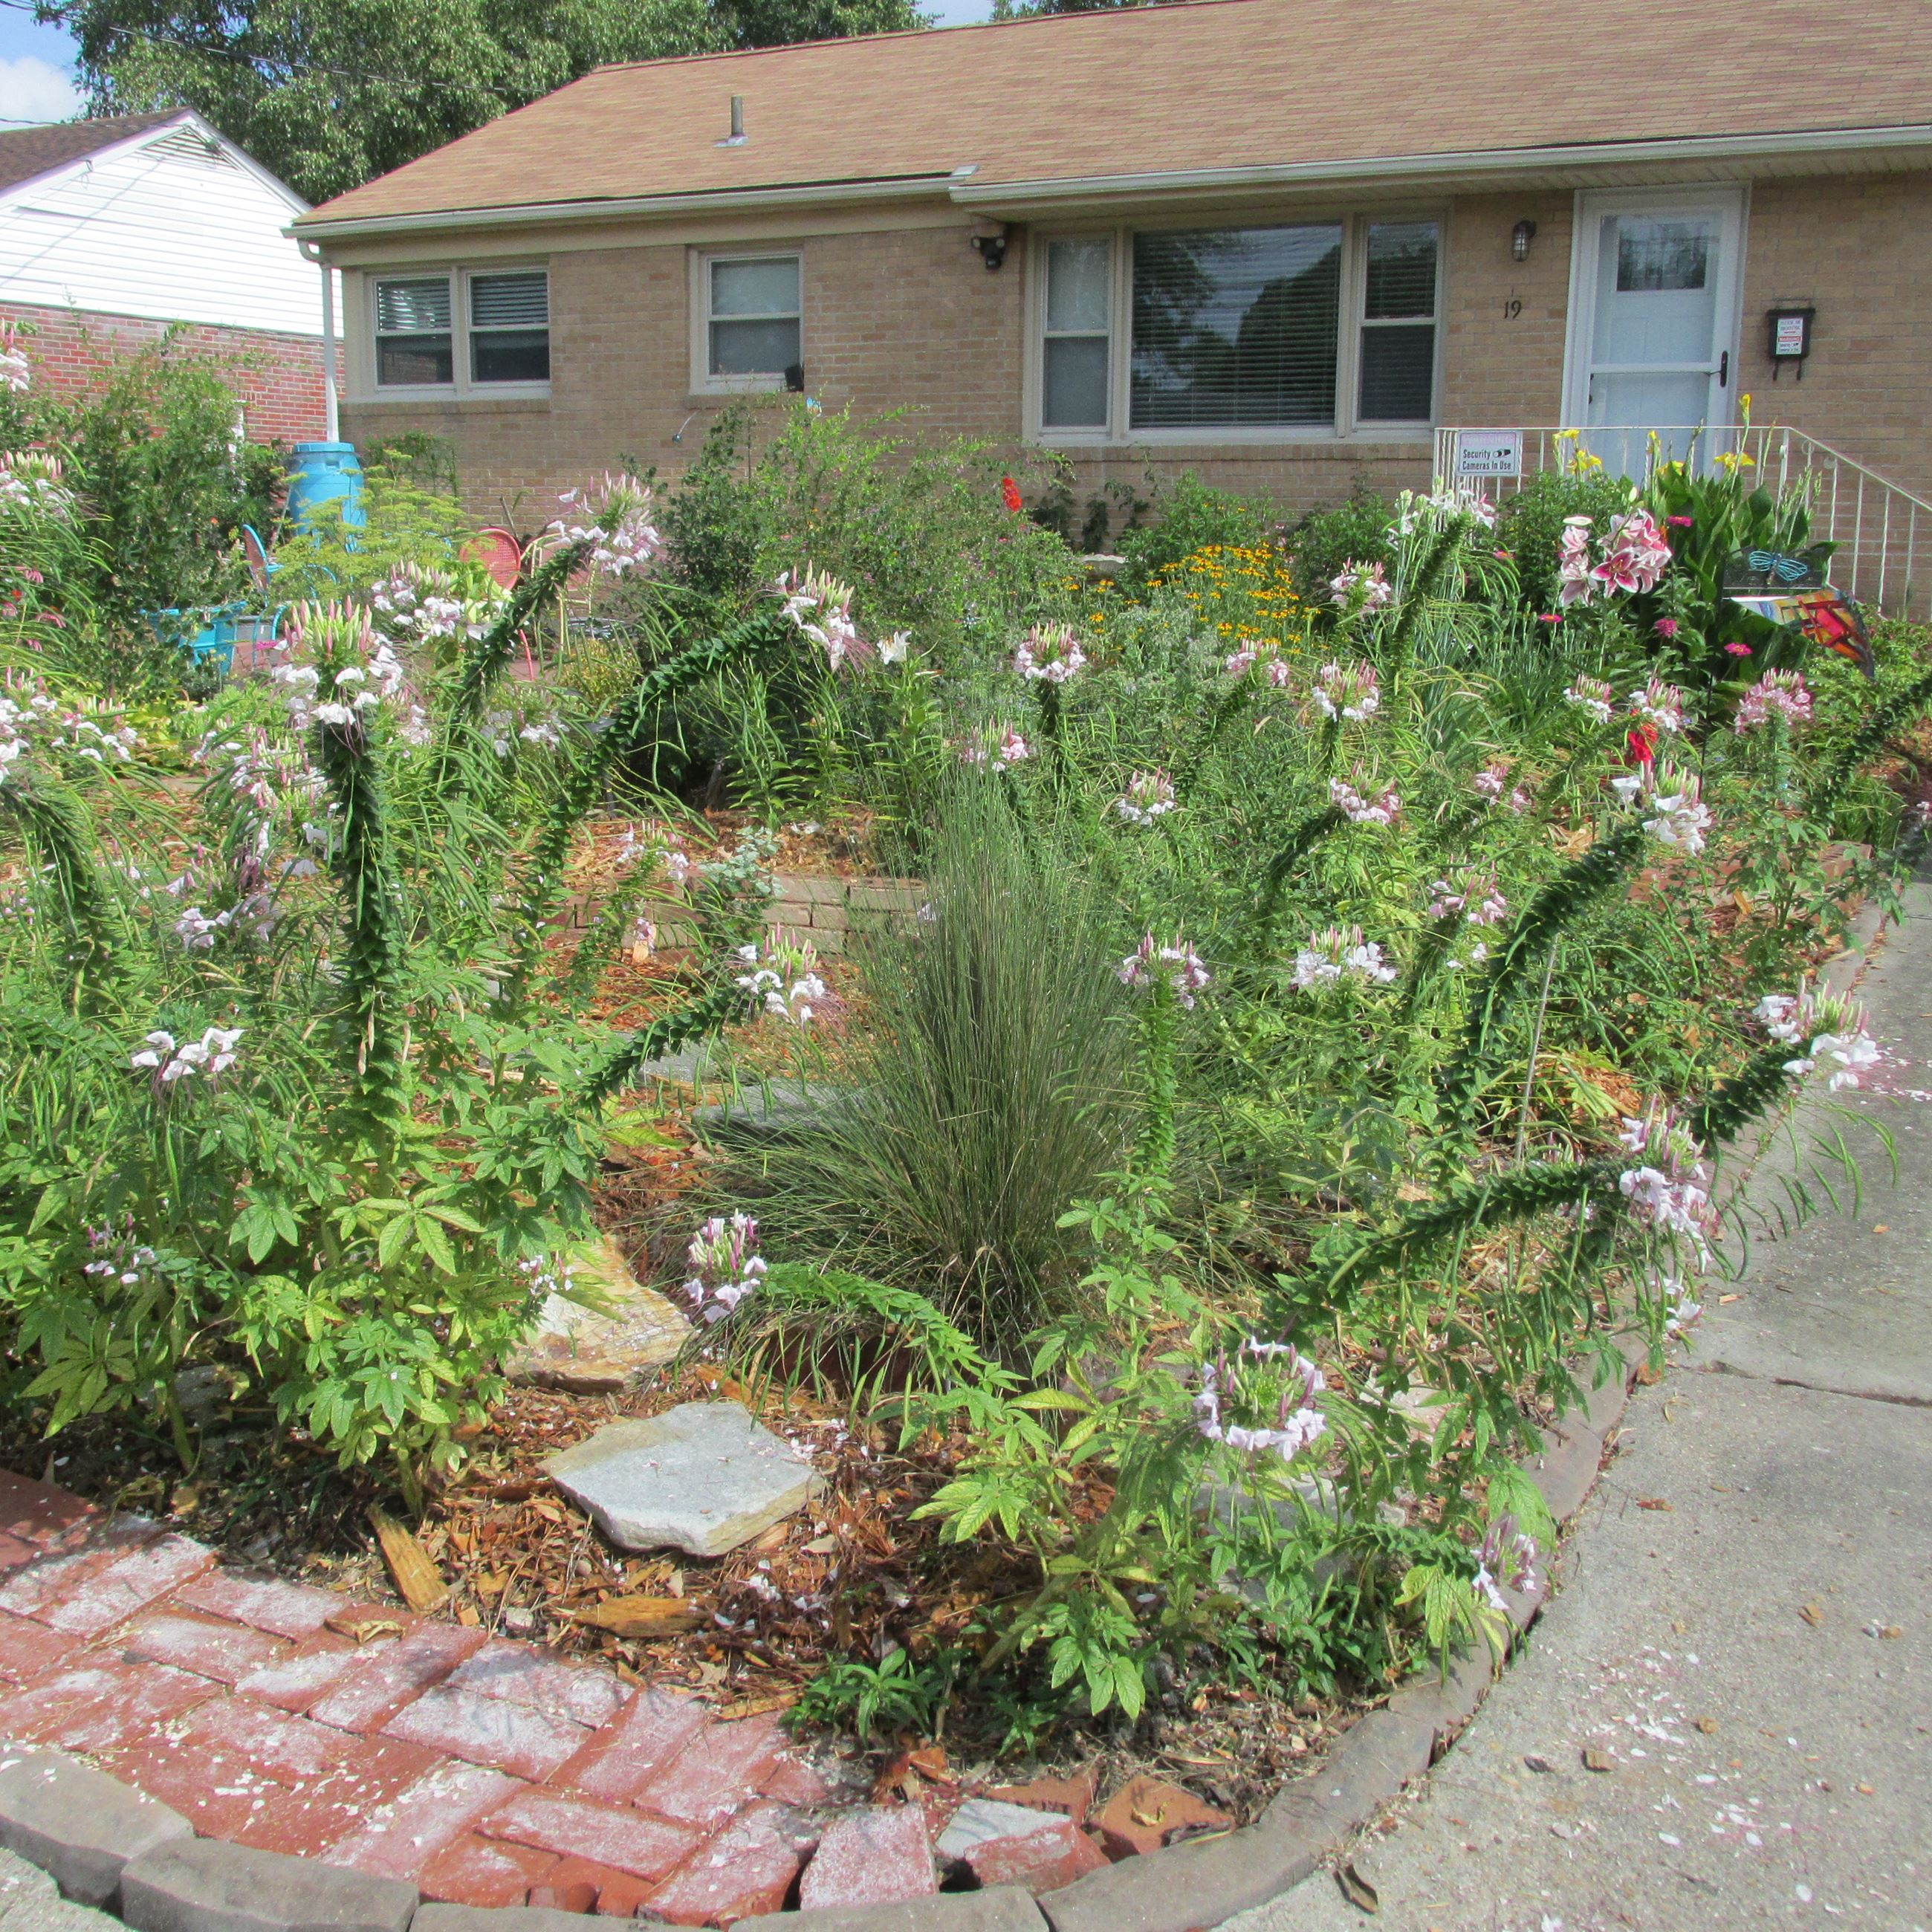 Pollinator friendly yard of the year